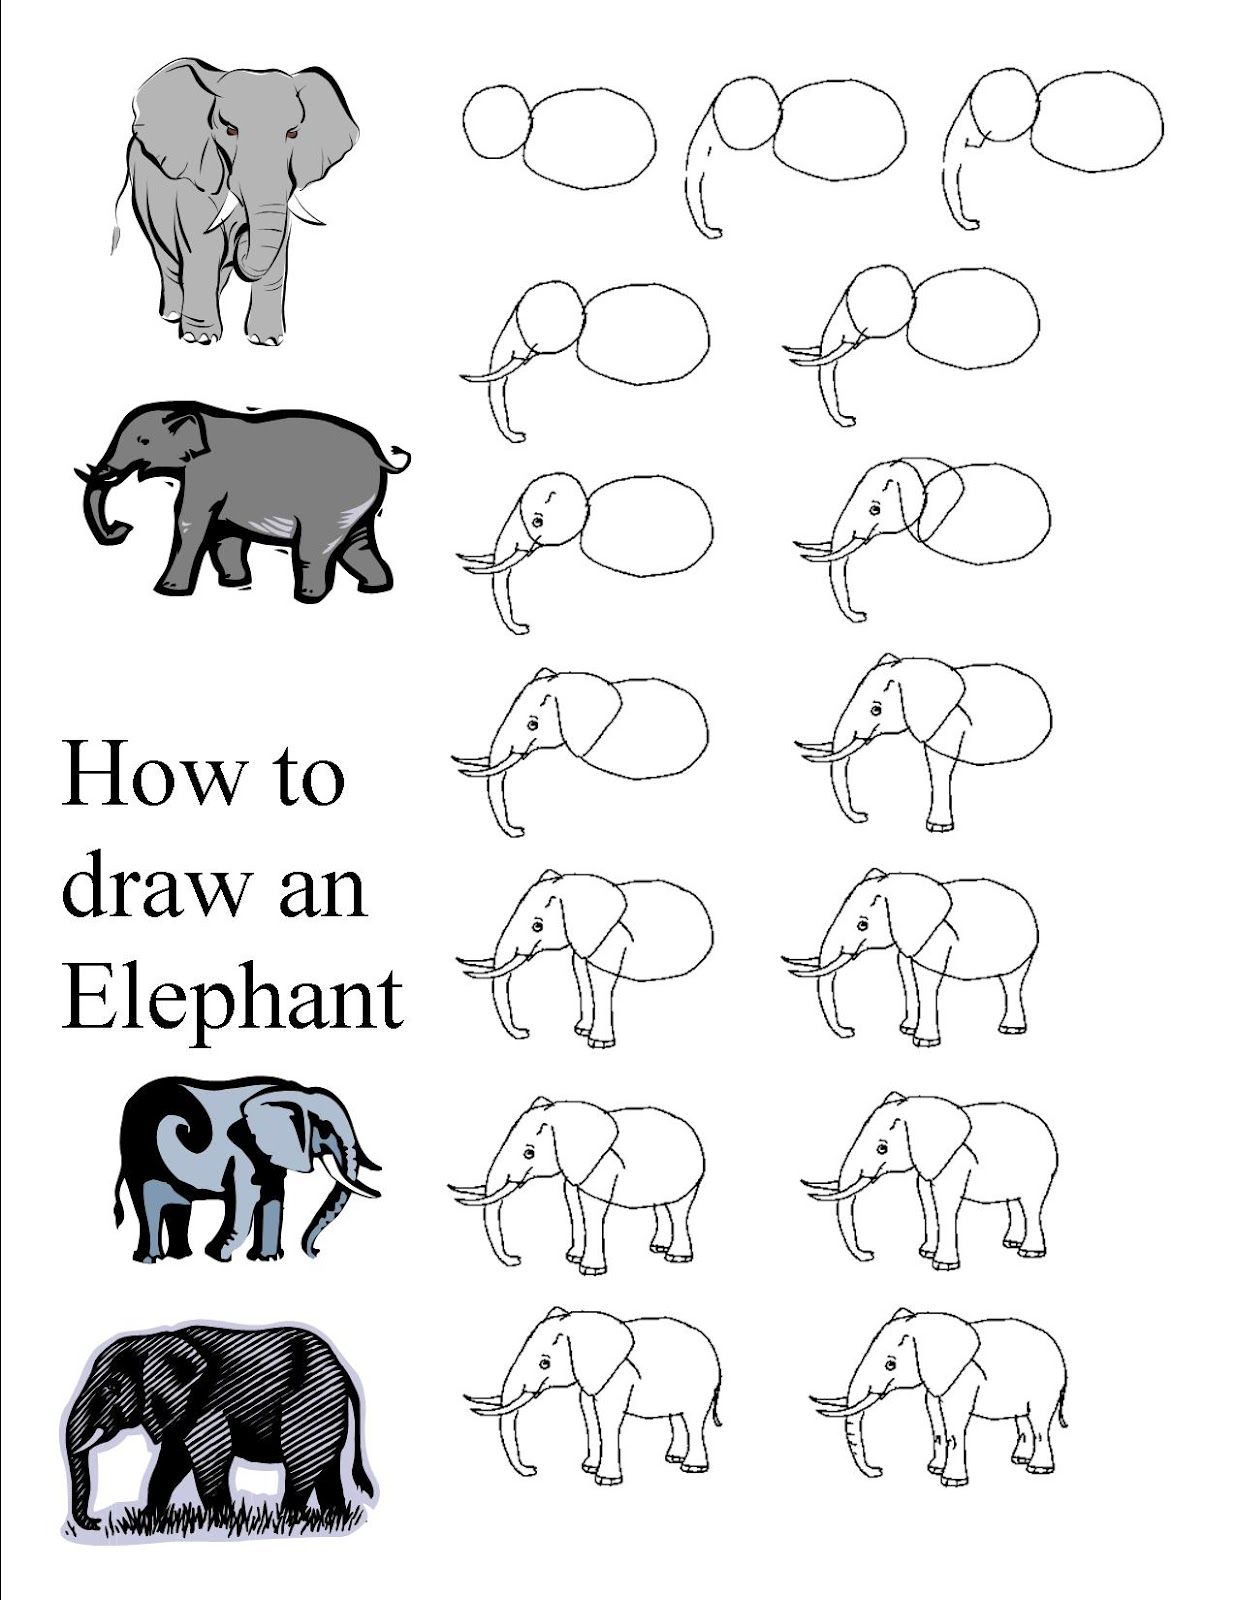 How To Draw An Elephant I See A Nice Watercolor Painting Here Of An African